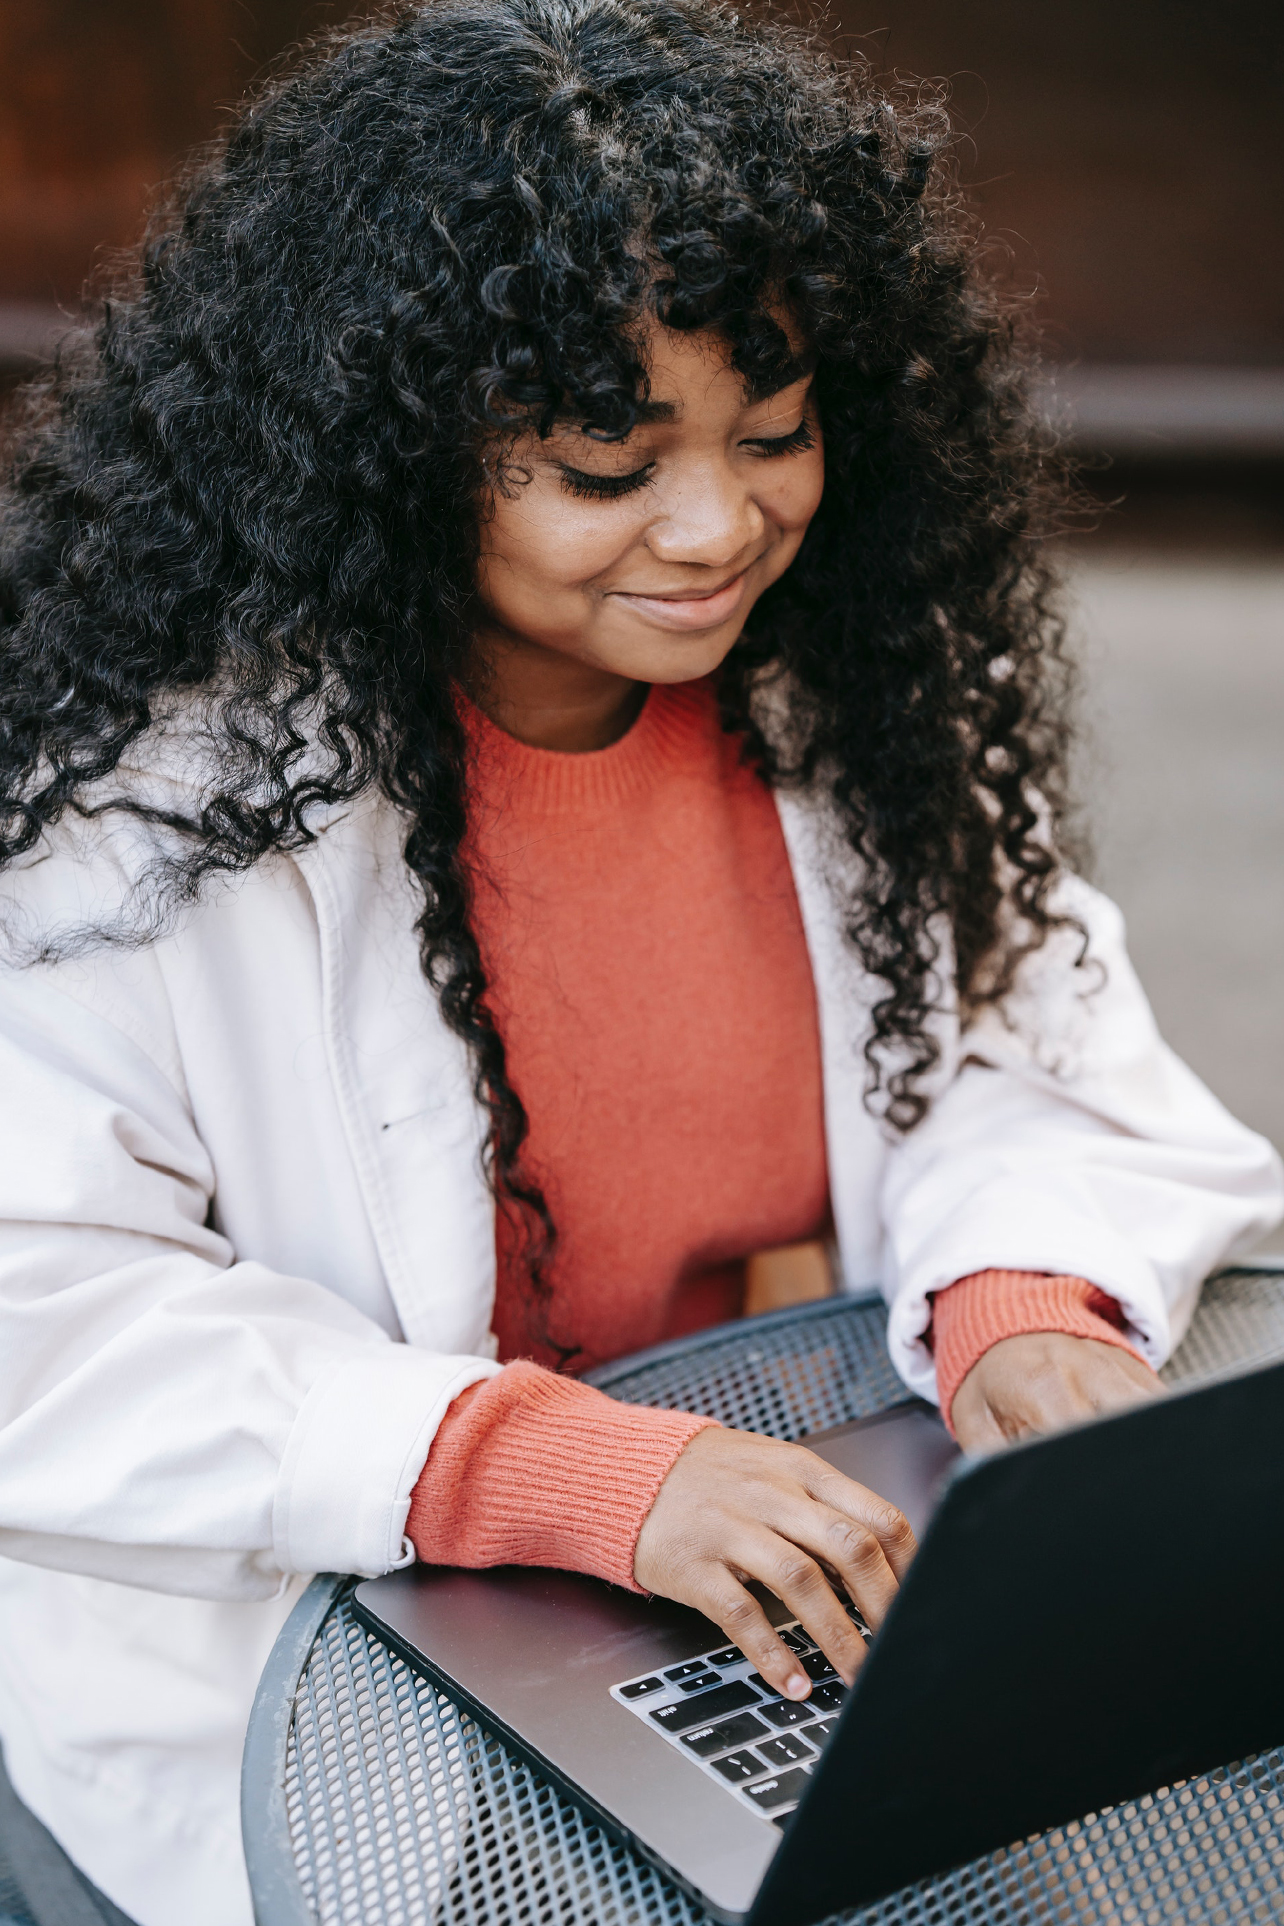 Lady smiling while typing on her laptop